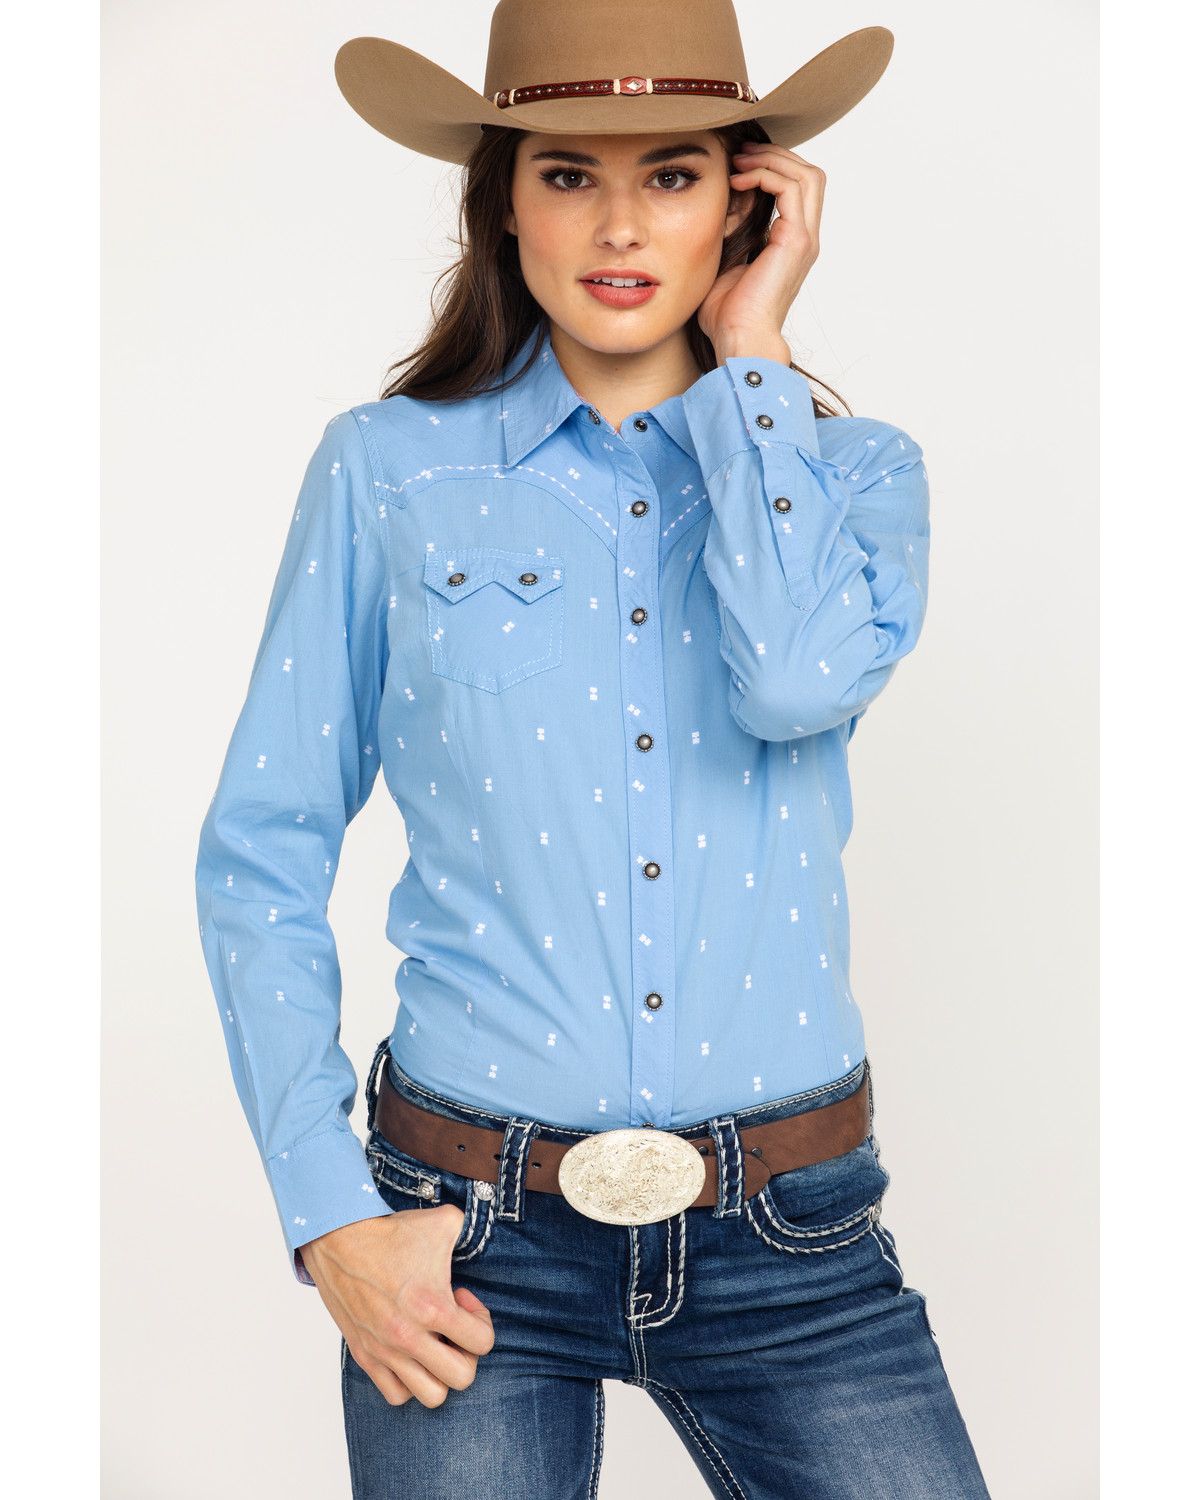 Ariat Long Sleeve Western Shirts - Ortsplanungsrevision